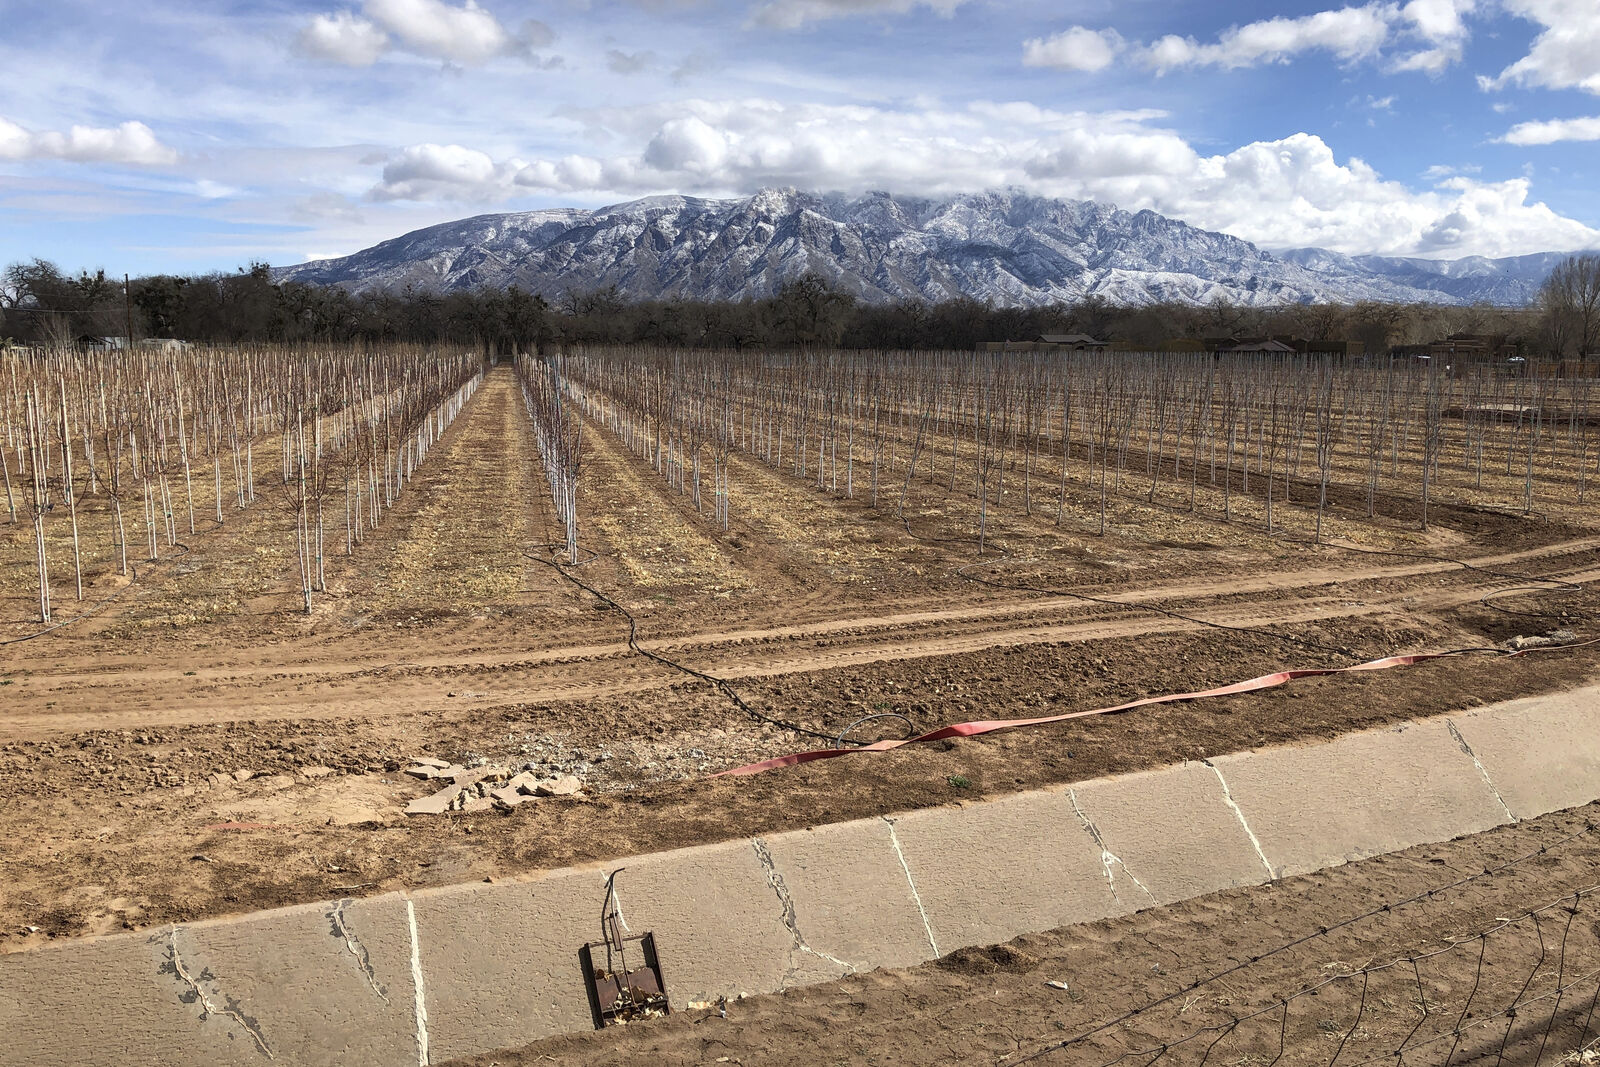 FILE - In this Feb. 17, 2021, file photo, an empty irrigation canal lines a tree farm in Corrales, N.M., as snow covers the Sandia Mountains in the background. (AP Photo/Susan Montoya Bryan, File)